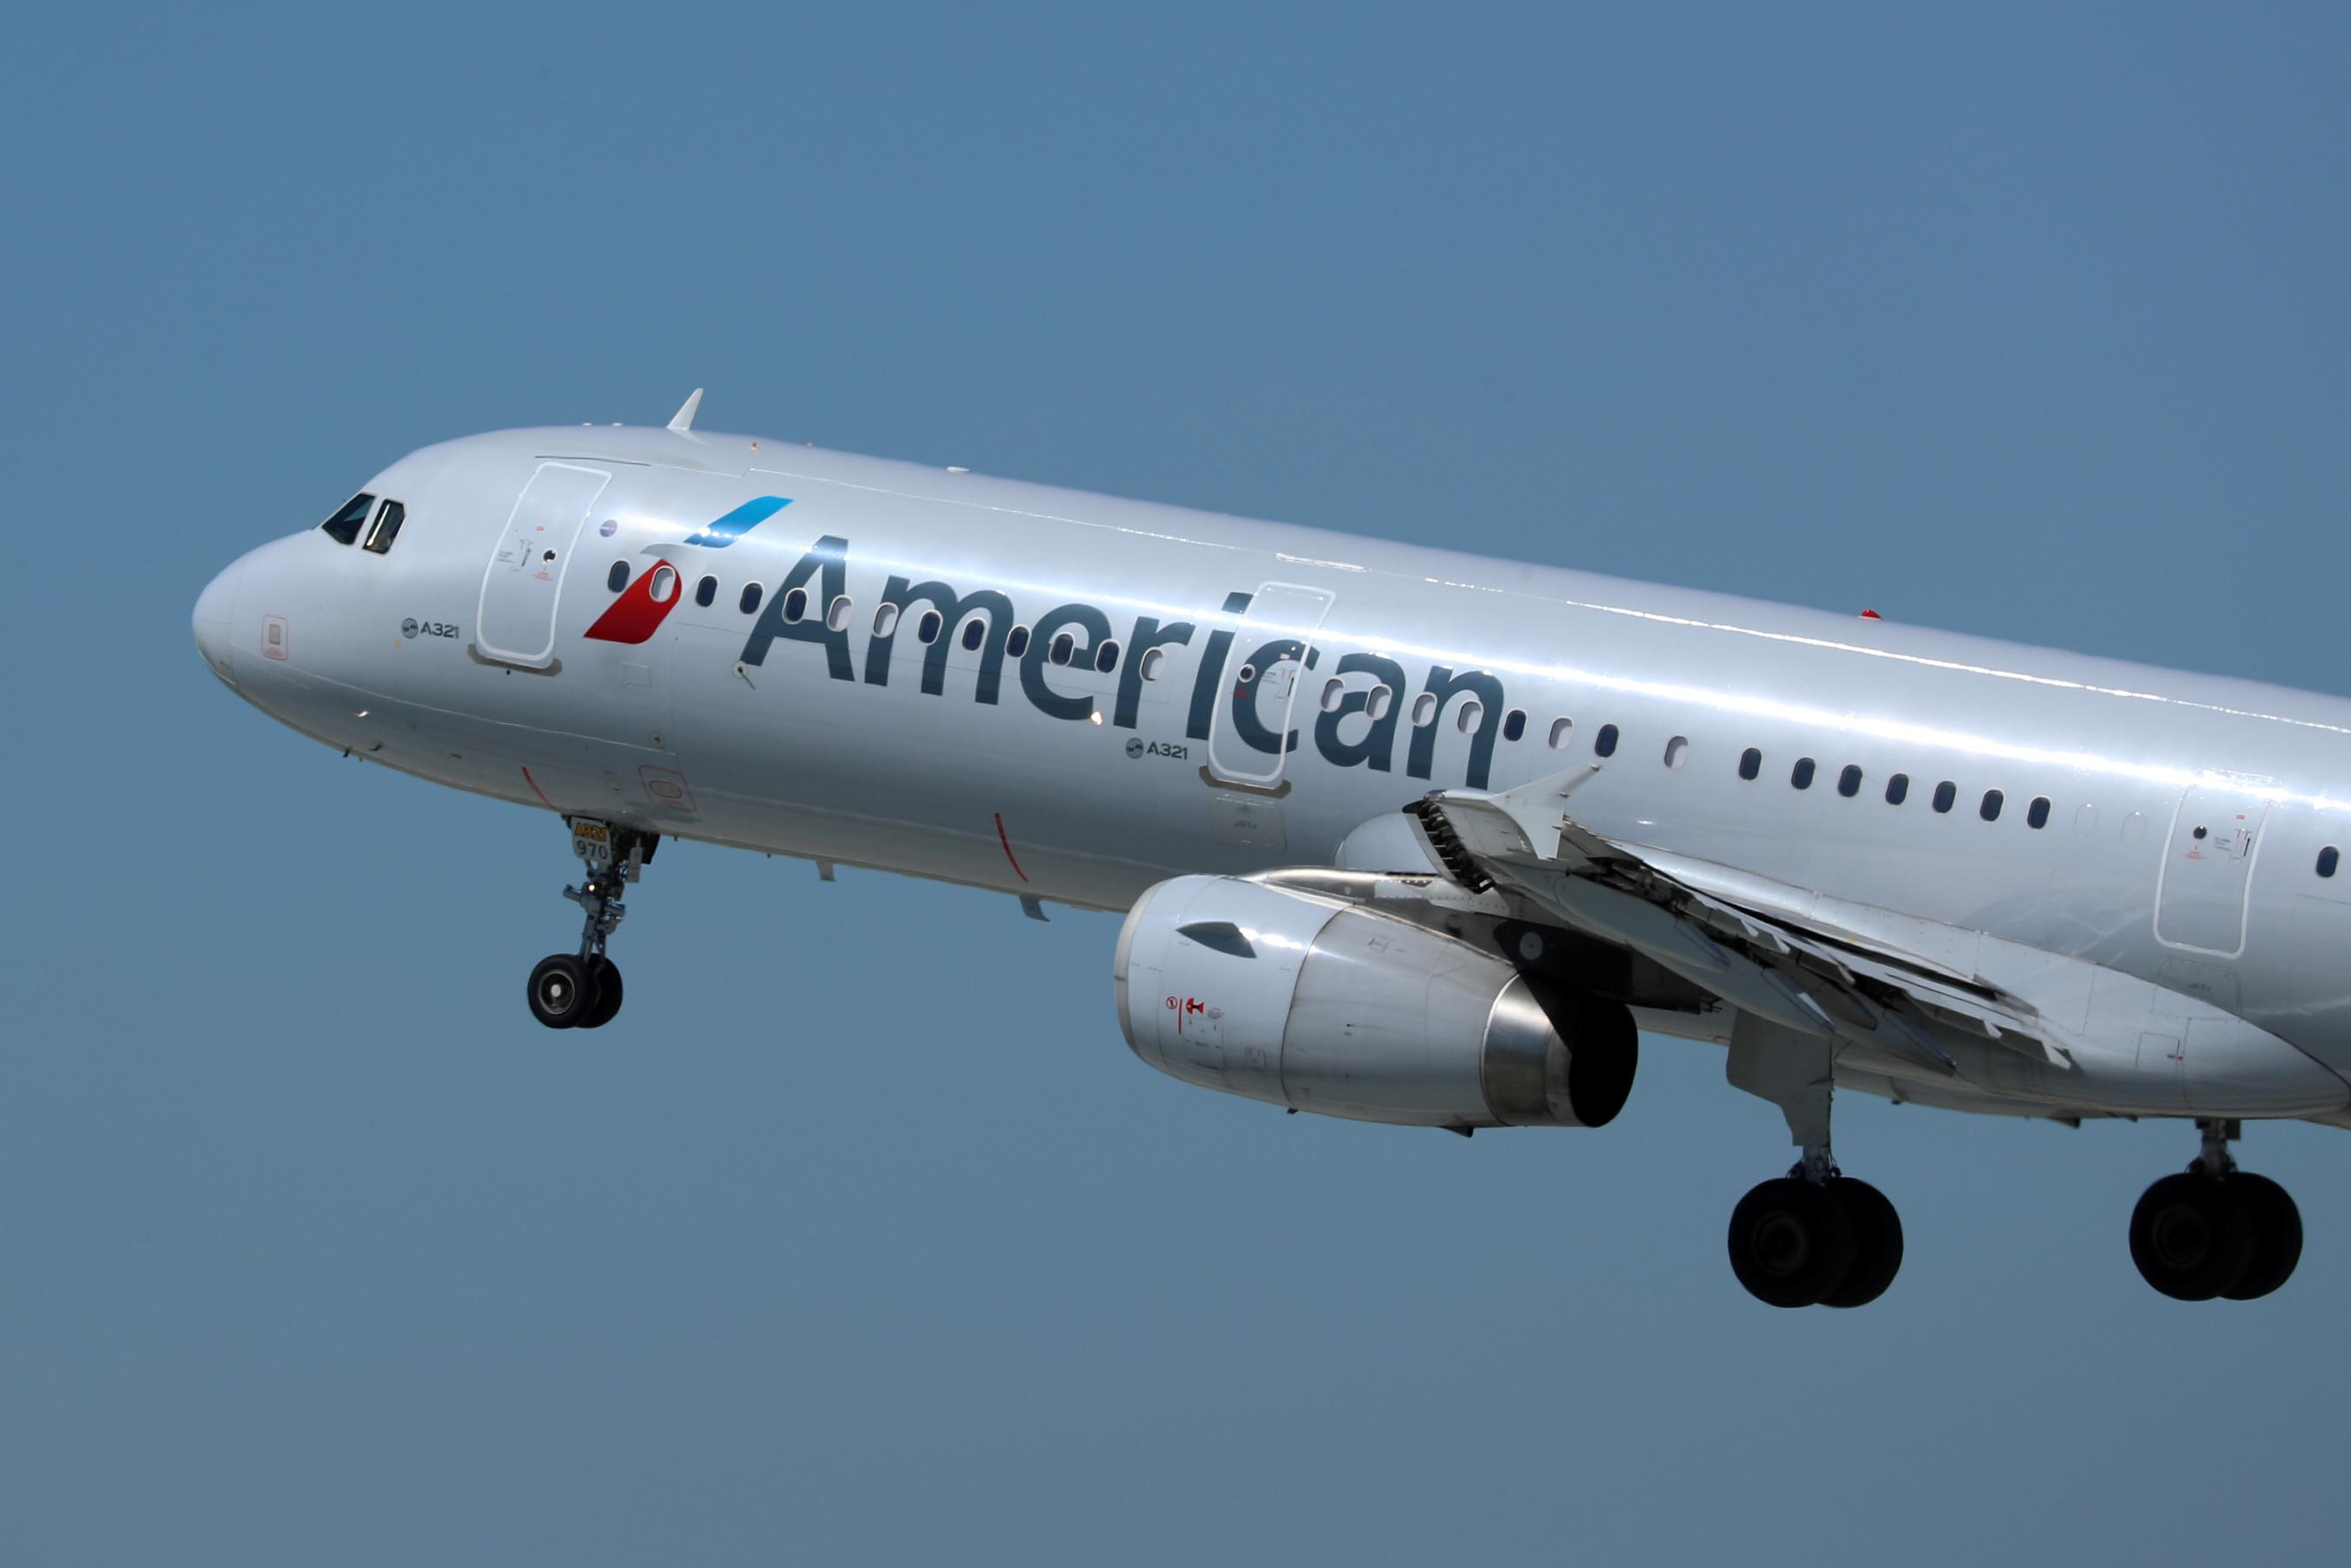 American Airlines to pay $22.1 million U.S. fine over mail delivery times: Justice Department